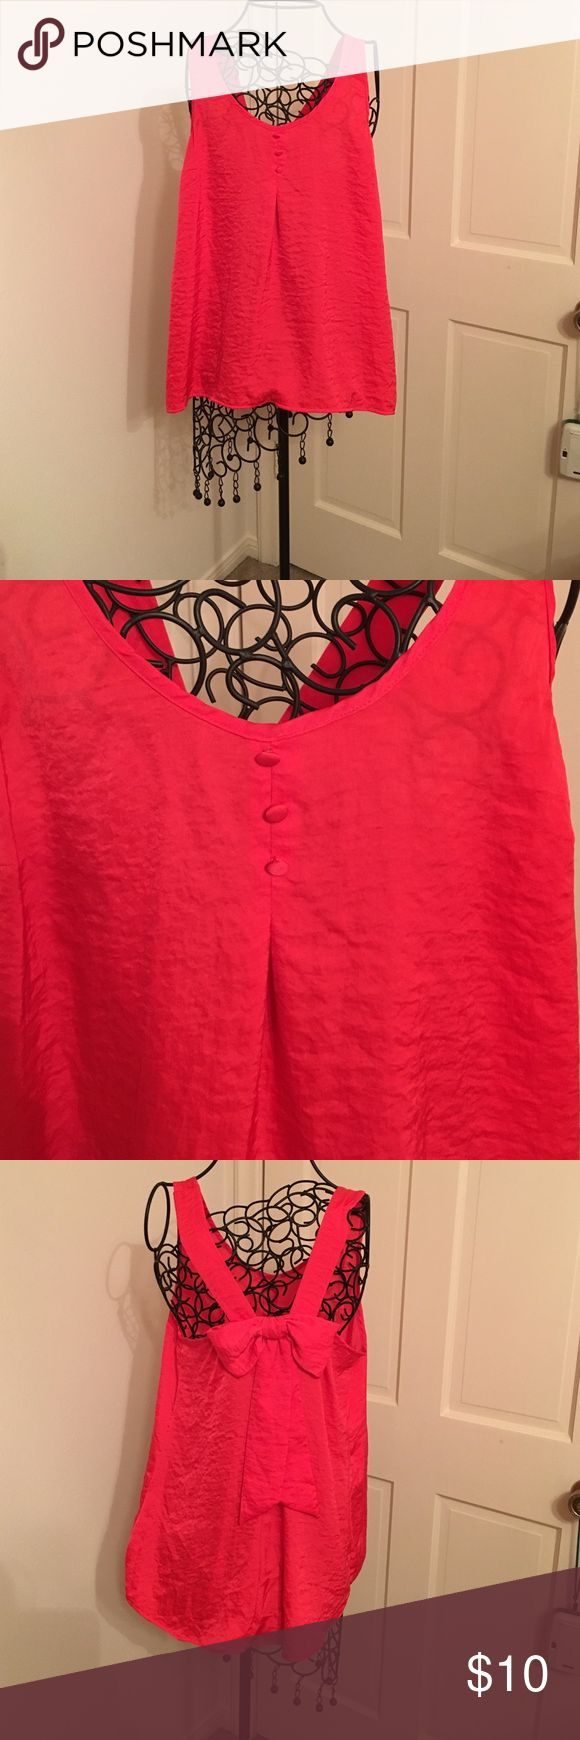 Bow back blouse Silk bow back shirt color is a pink redish... Hard to describe. Very cute Candie's Tops Blouses